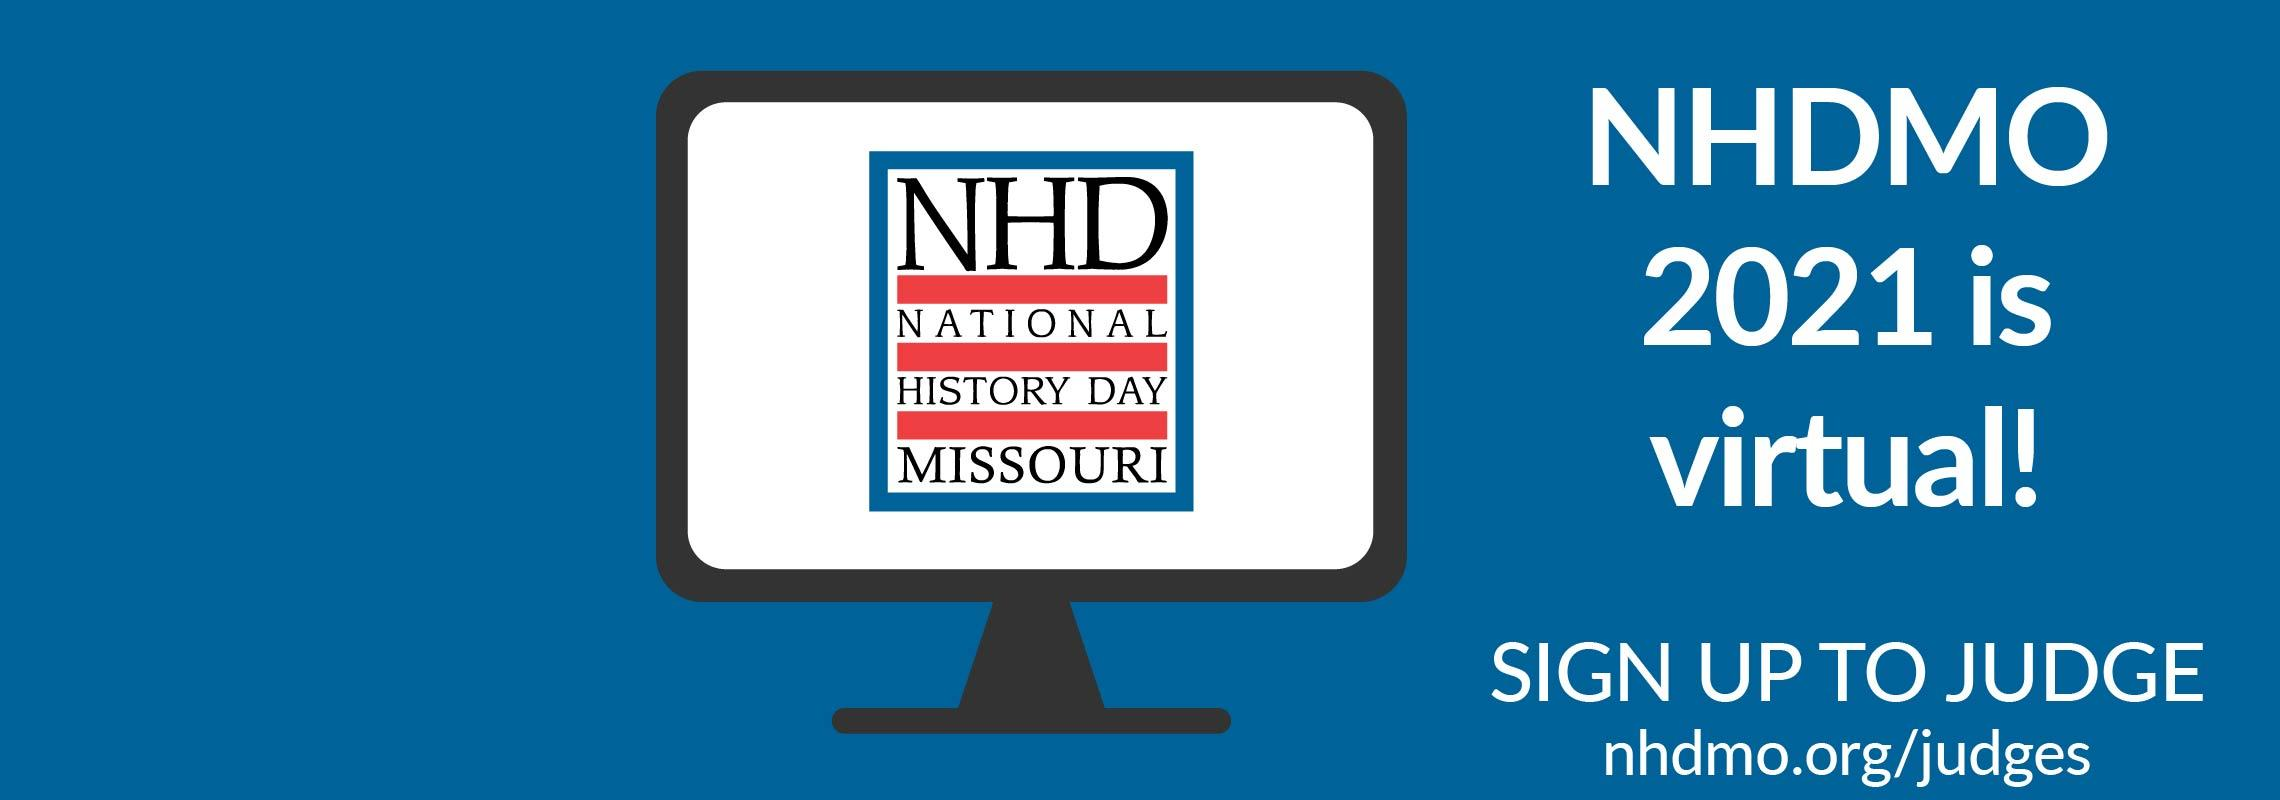 NHDMO 2021 is virtual! Sign up to judge